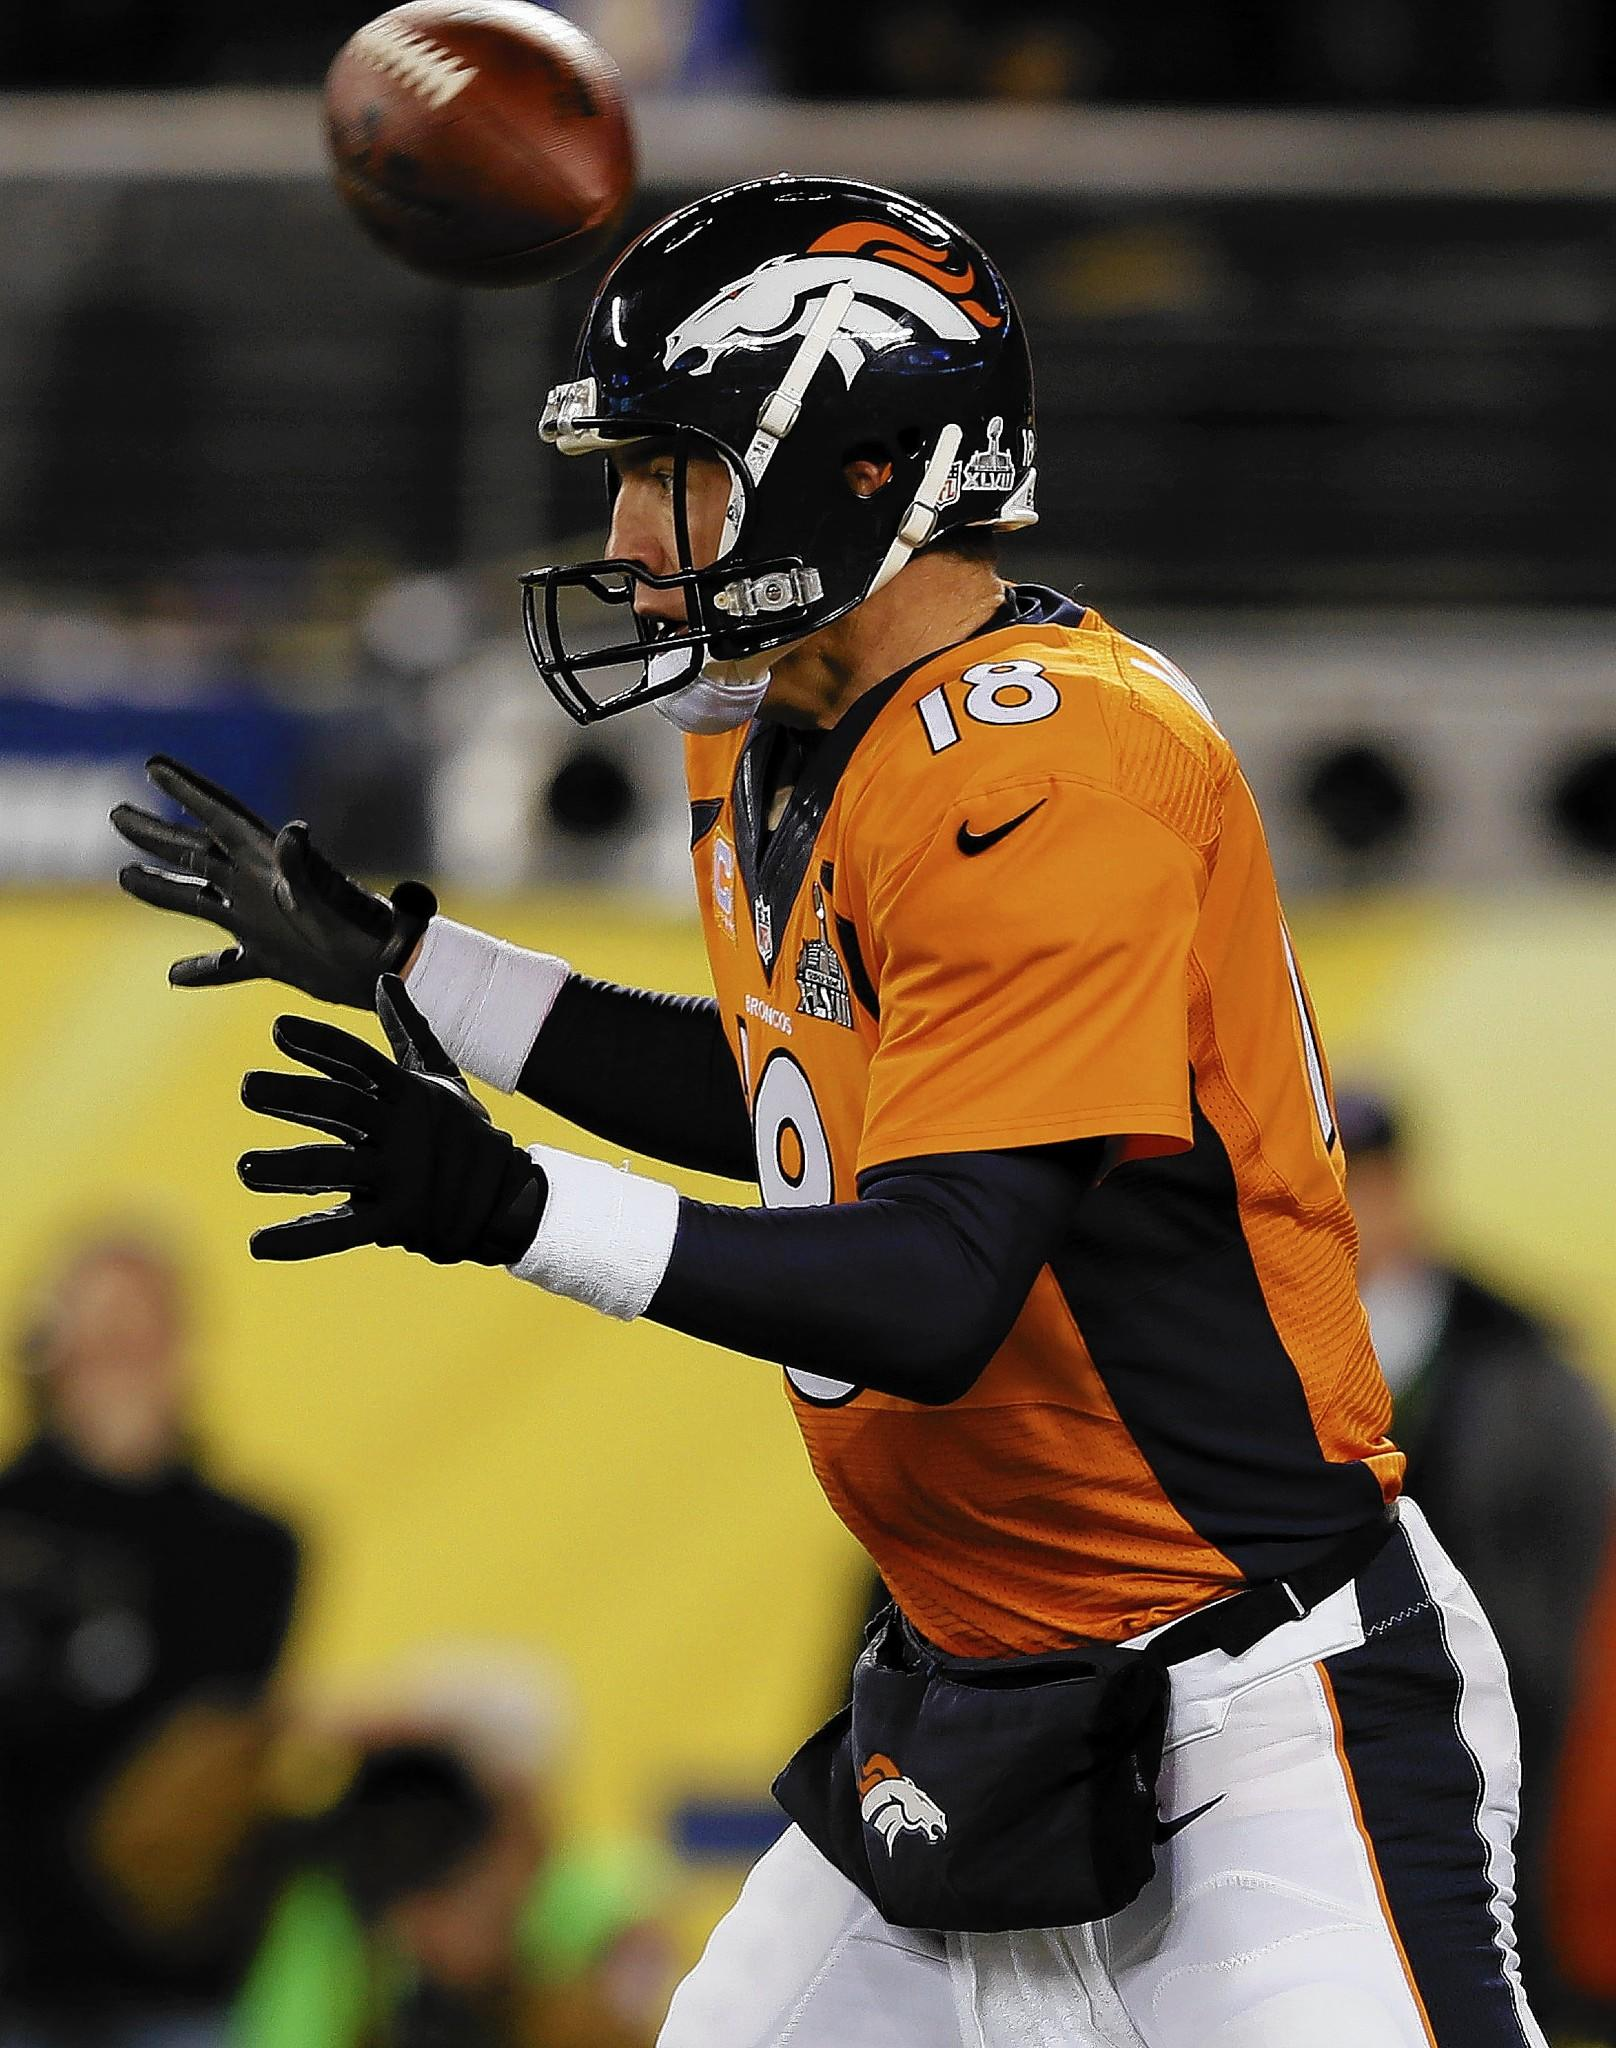 The ball flies over the head of Denver quarterback Peyton Manning in the first quarter. It was that kind of night for the Broncos.